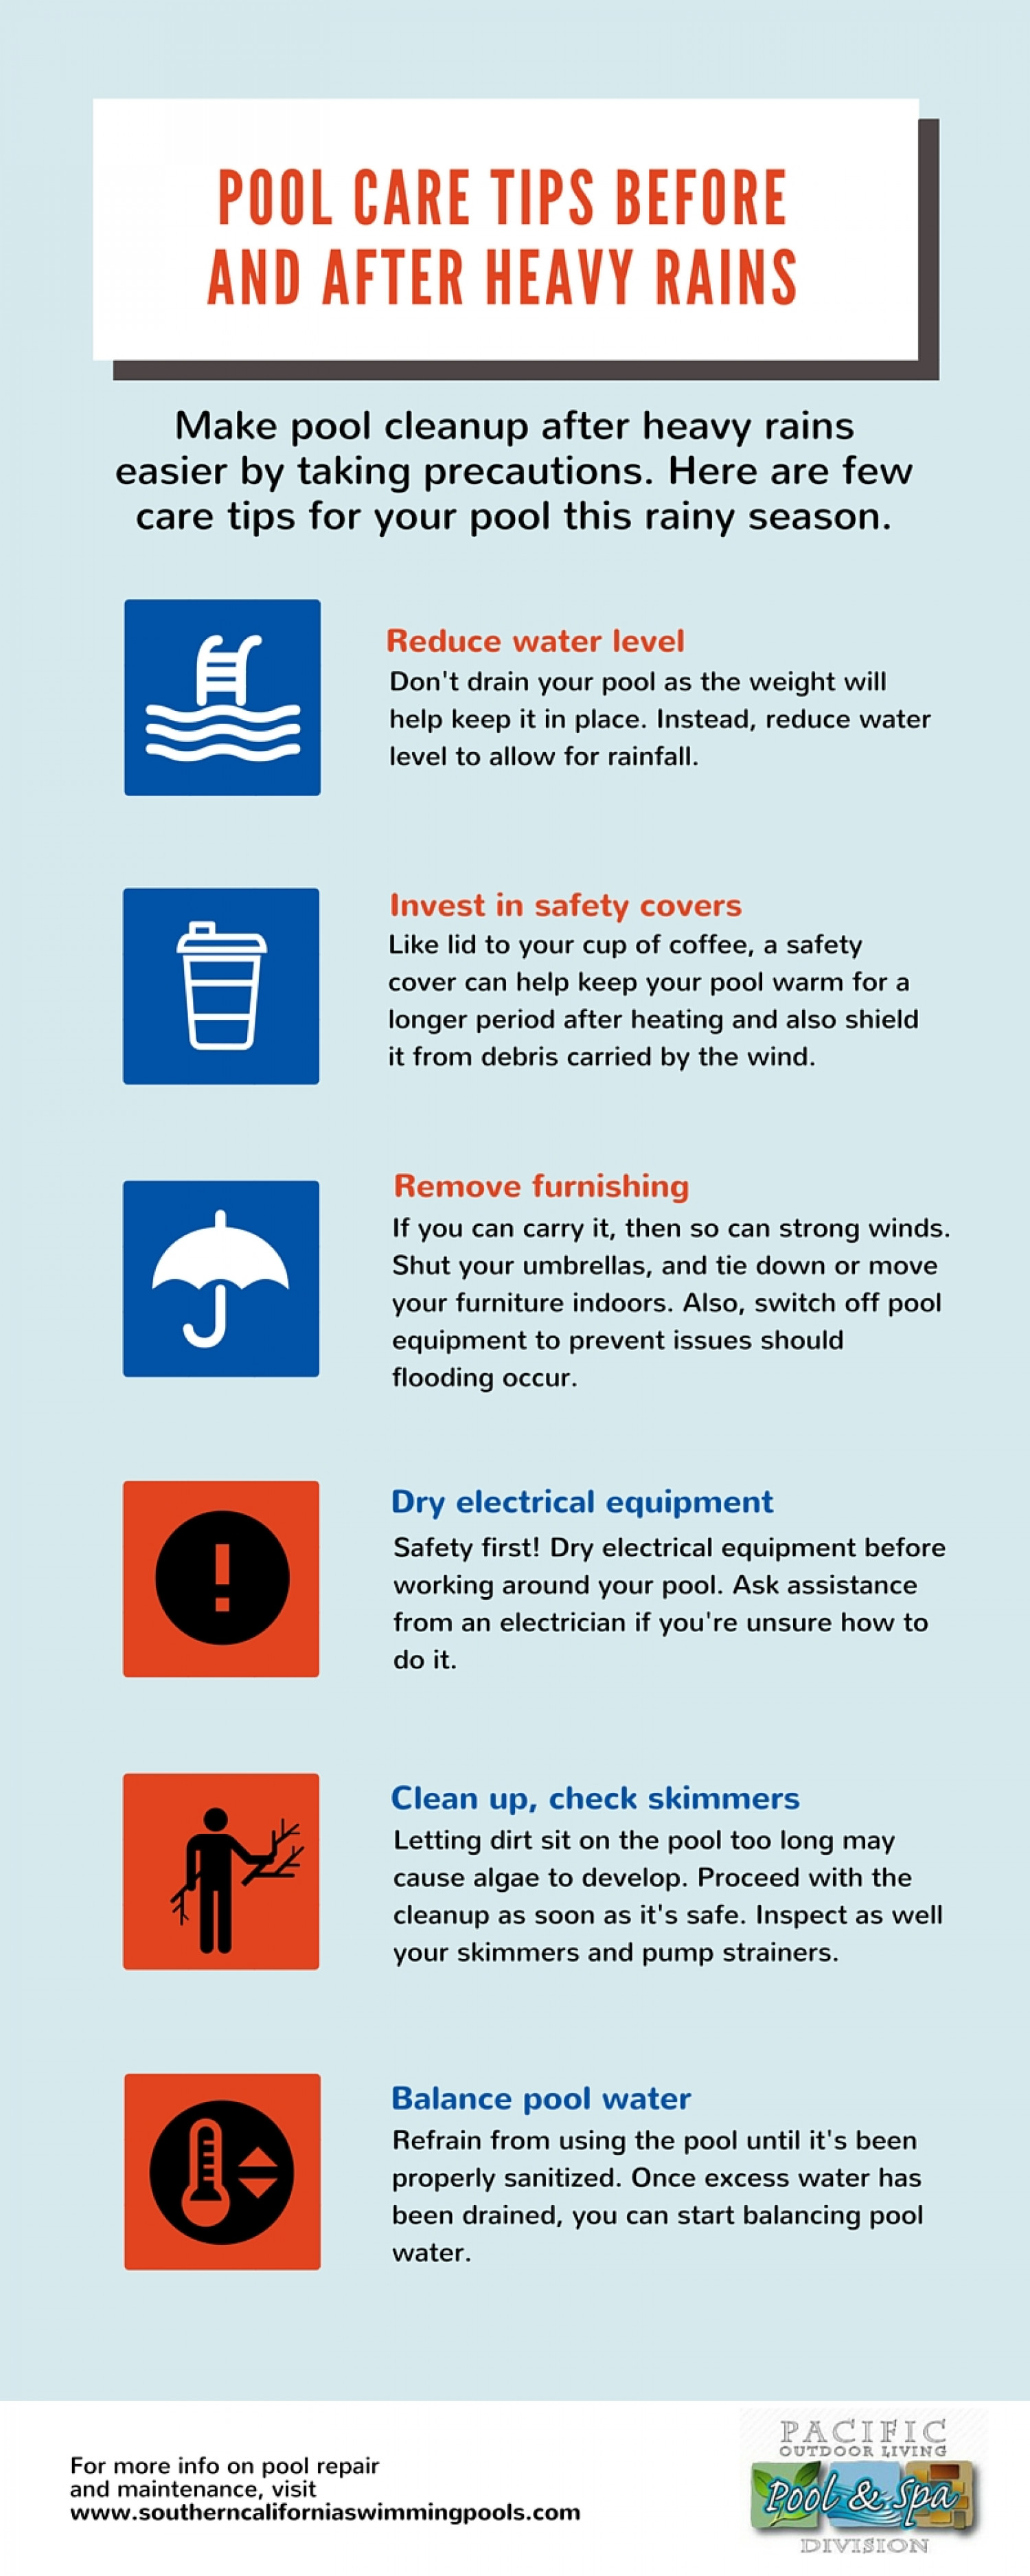 pool care tips before and after heavy rains infographic